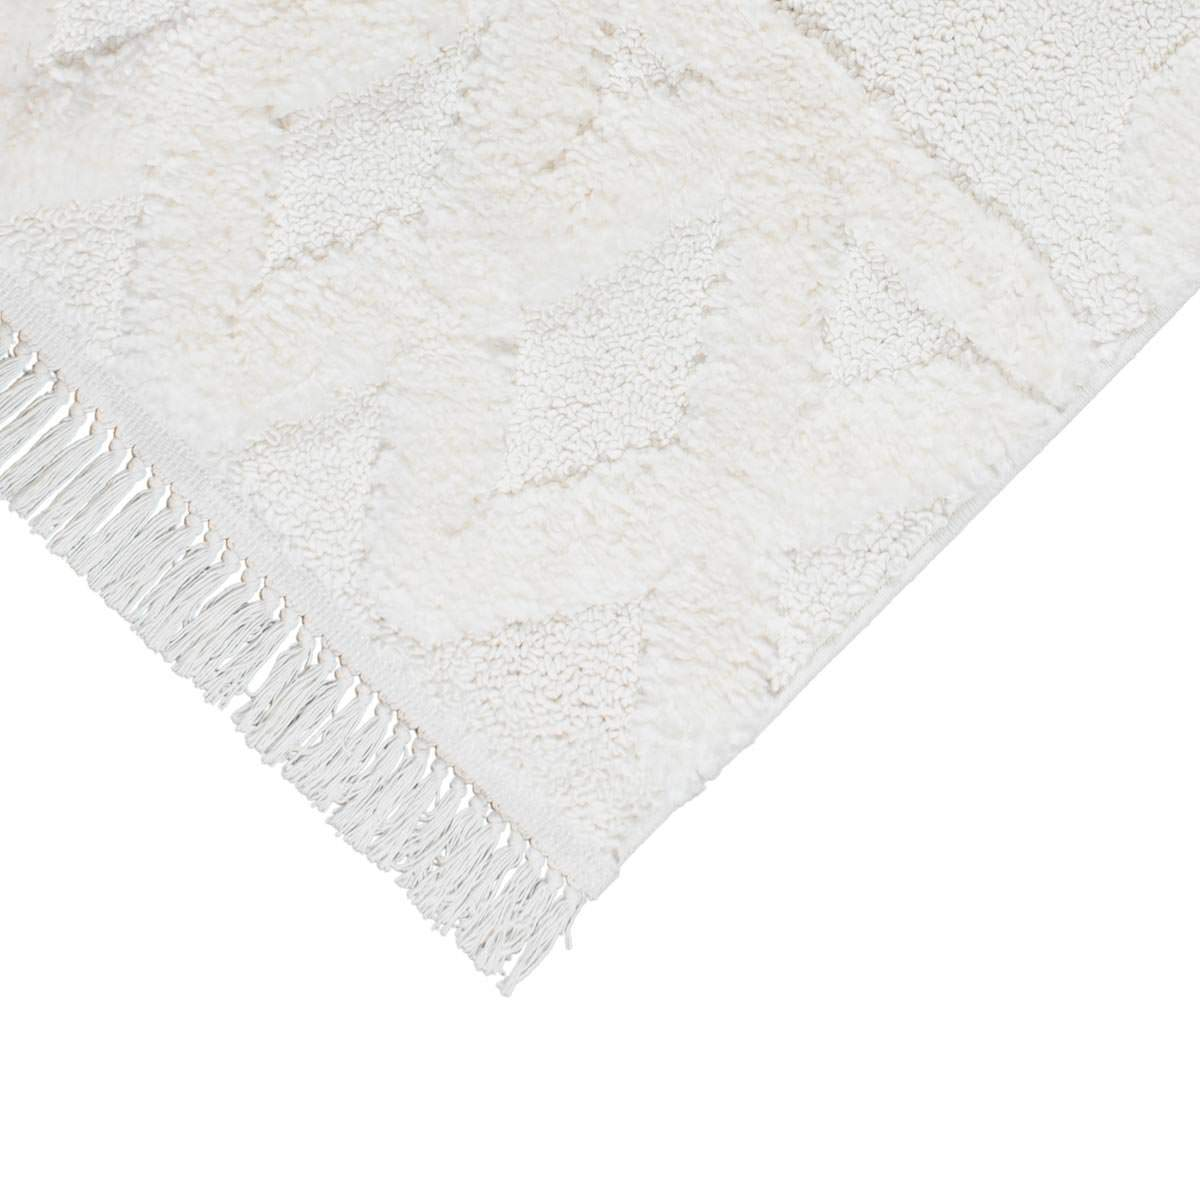 Atlas Rug 11 Cream - Fringes 3